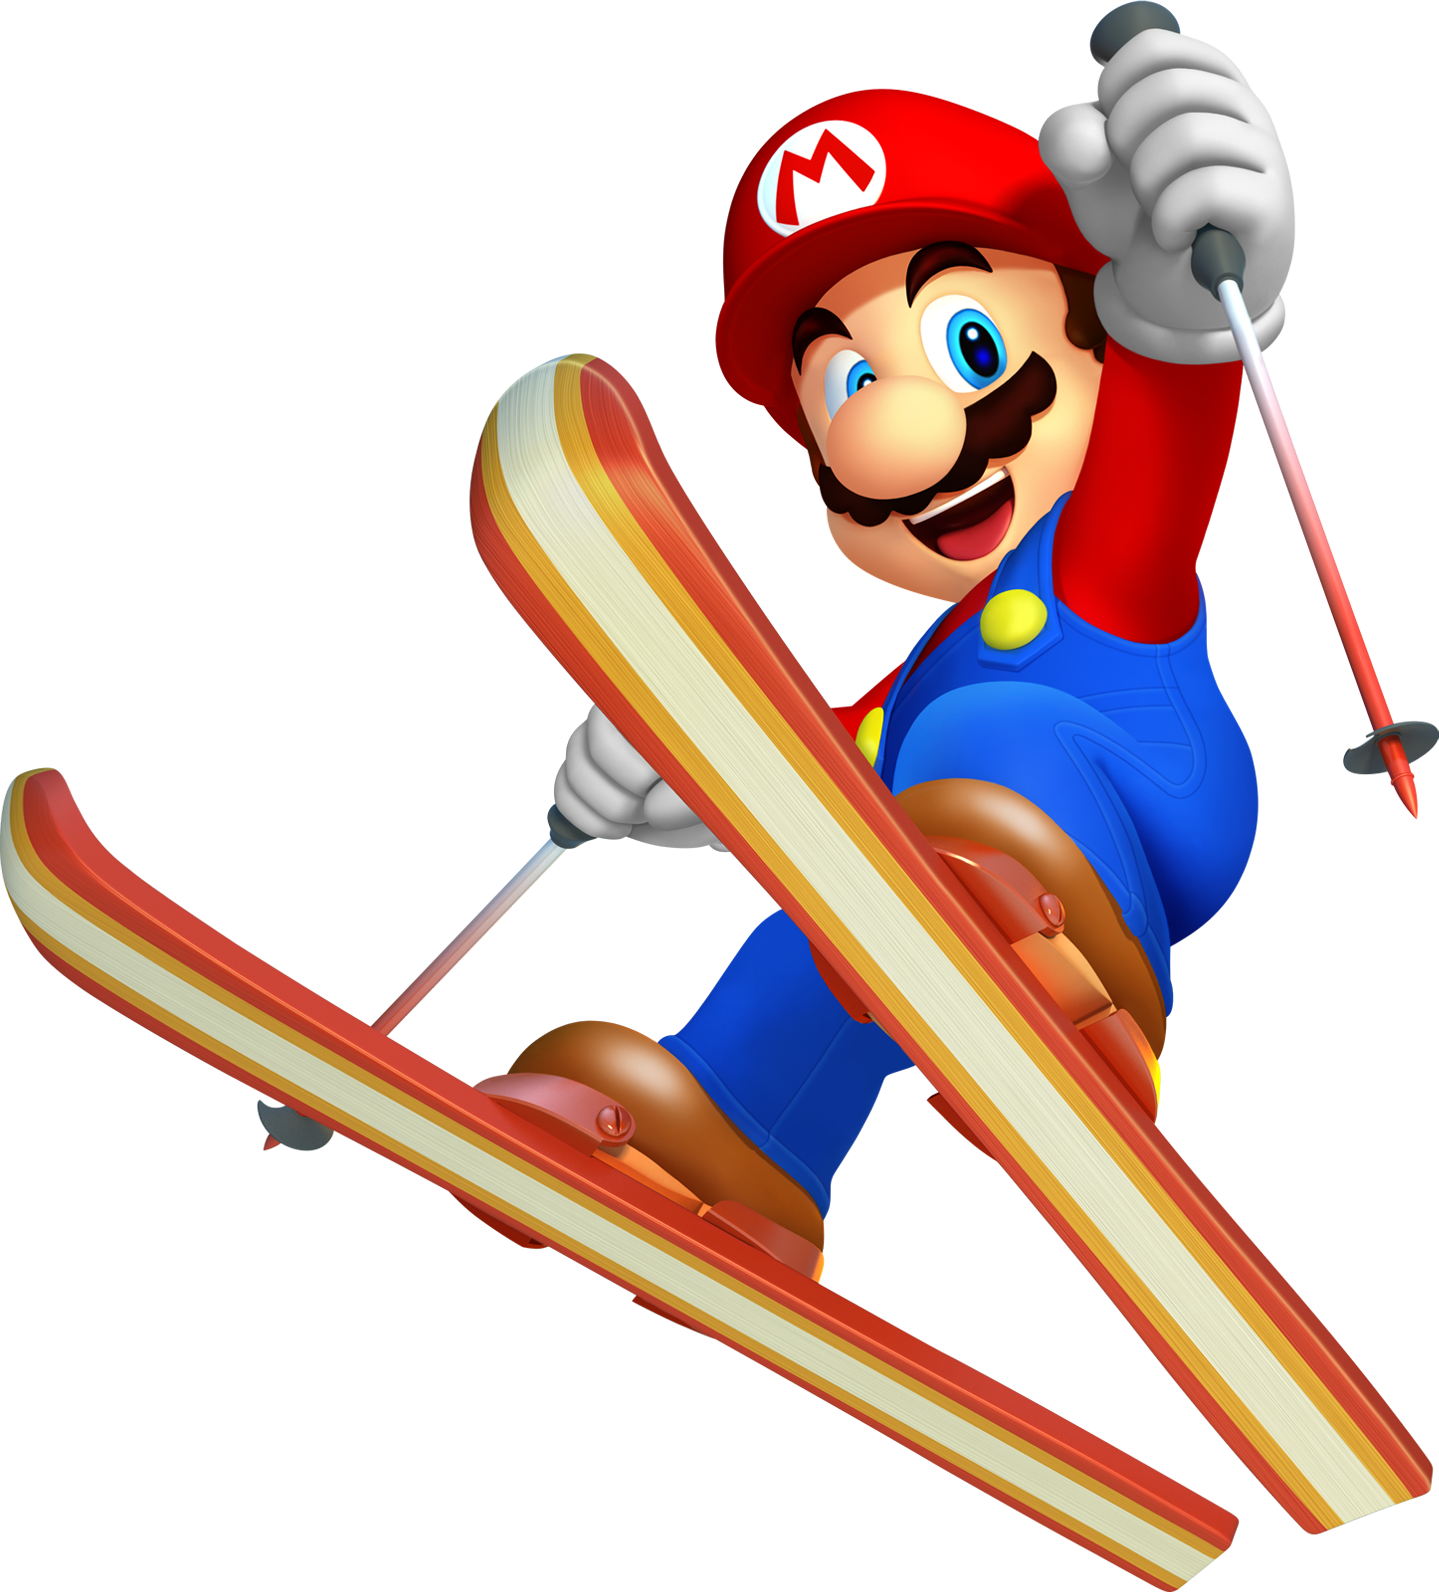 Olympics clipart ski. Mario png images free